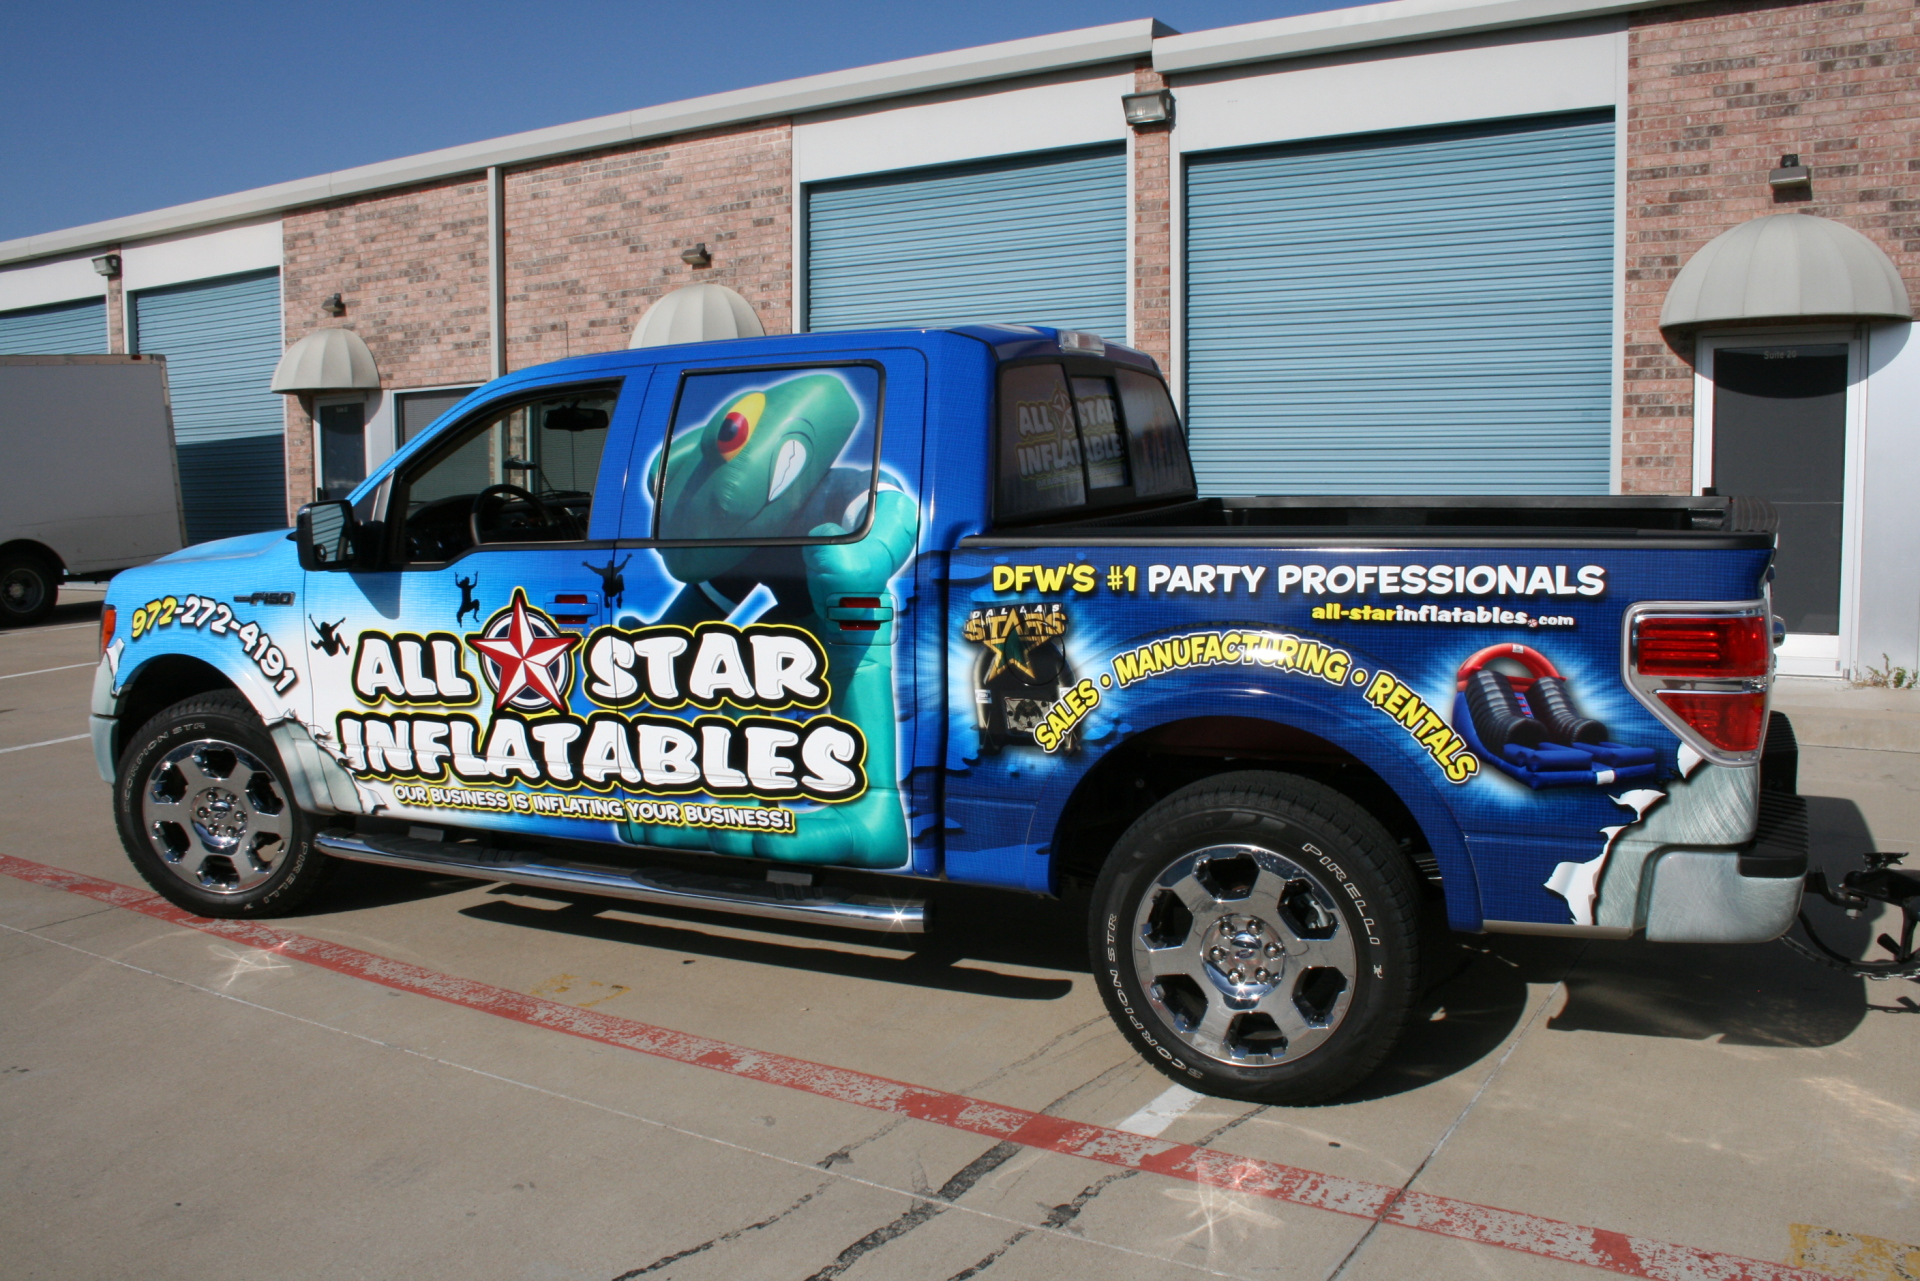 All Star Inflatables